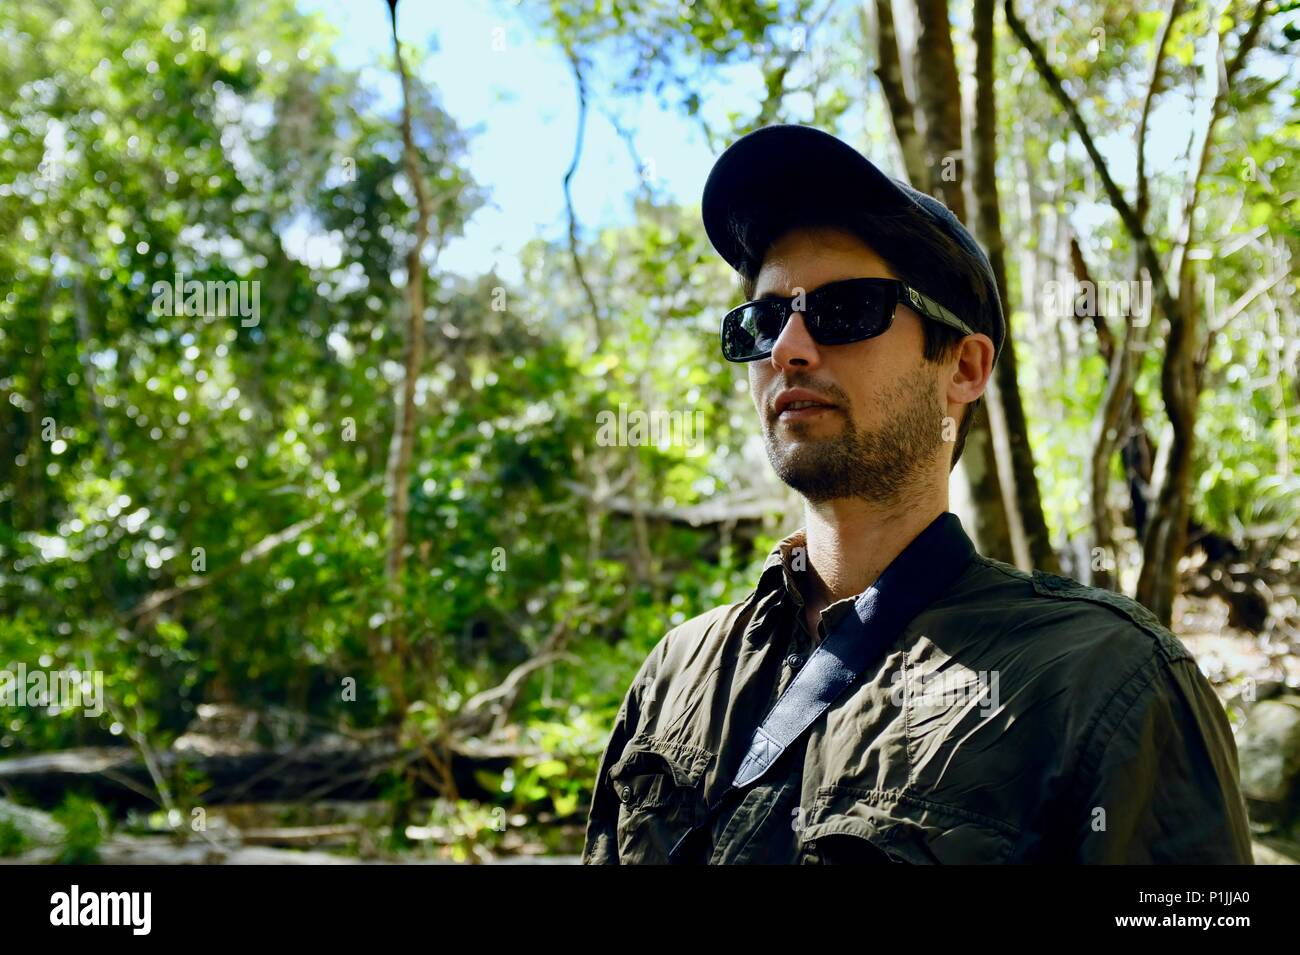 Young man wearing sunglasses and a hat in a forest, Paluma Range National Park, Rollingstone QLD, Australia - Stock Image